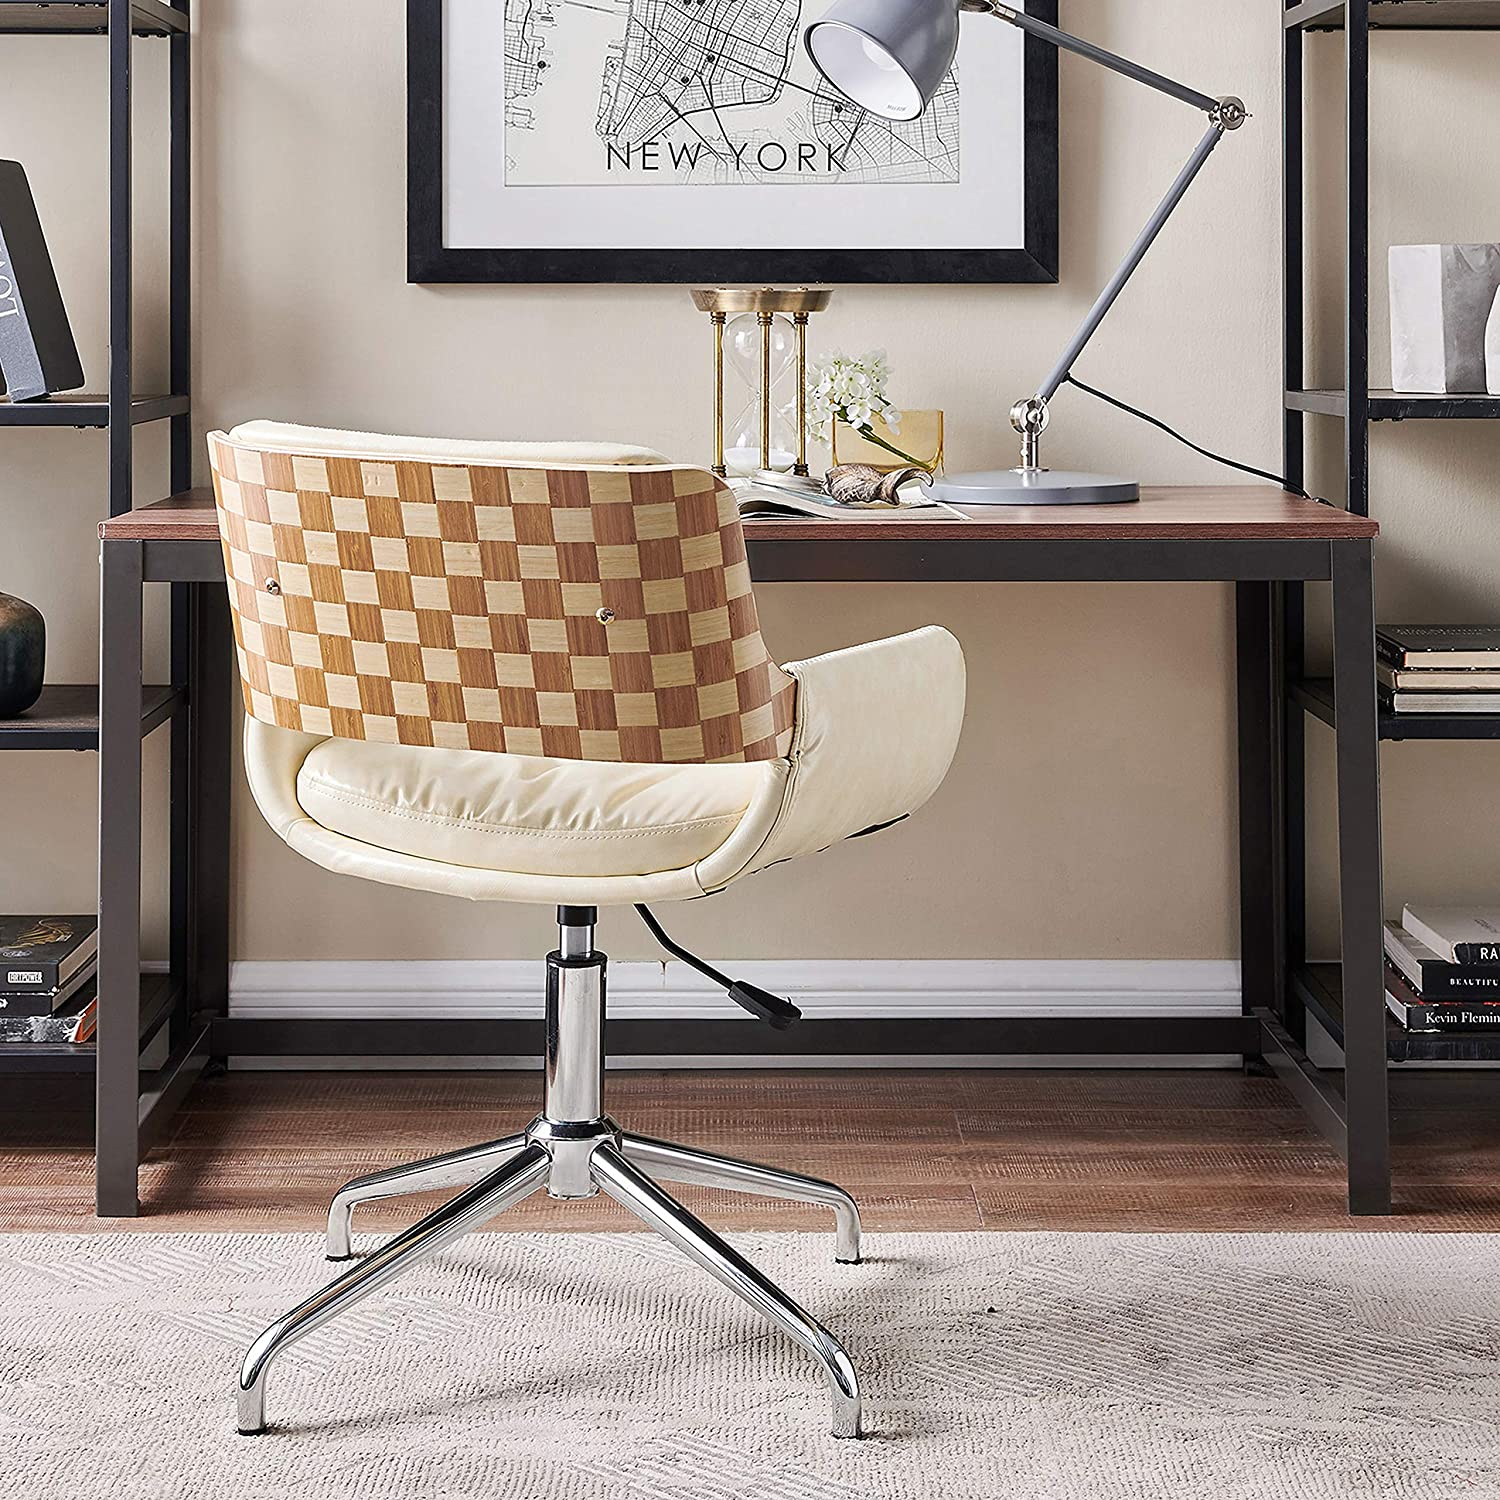 Volans Home Office Chair Mid Century Modern Bentwood Swivel Accent Office Desk Chair with Leather Upholstery, Adjustable Height Task Chair with Armrest, Creamy-White